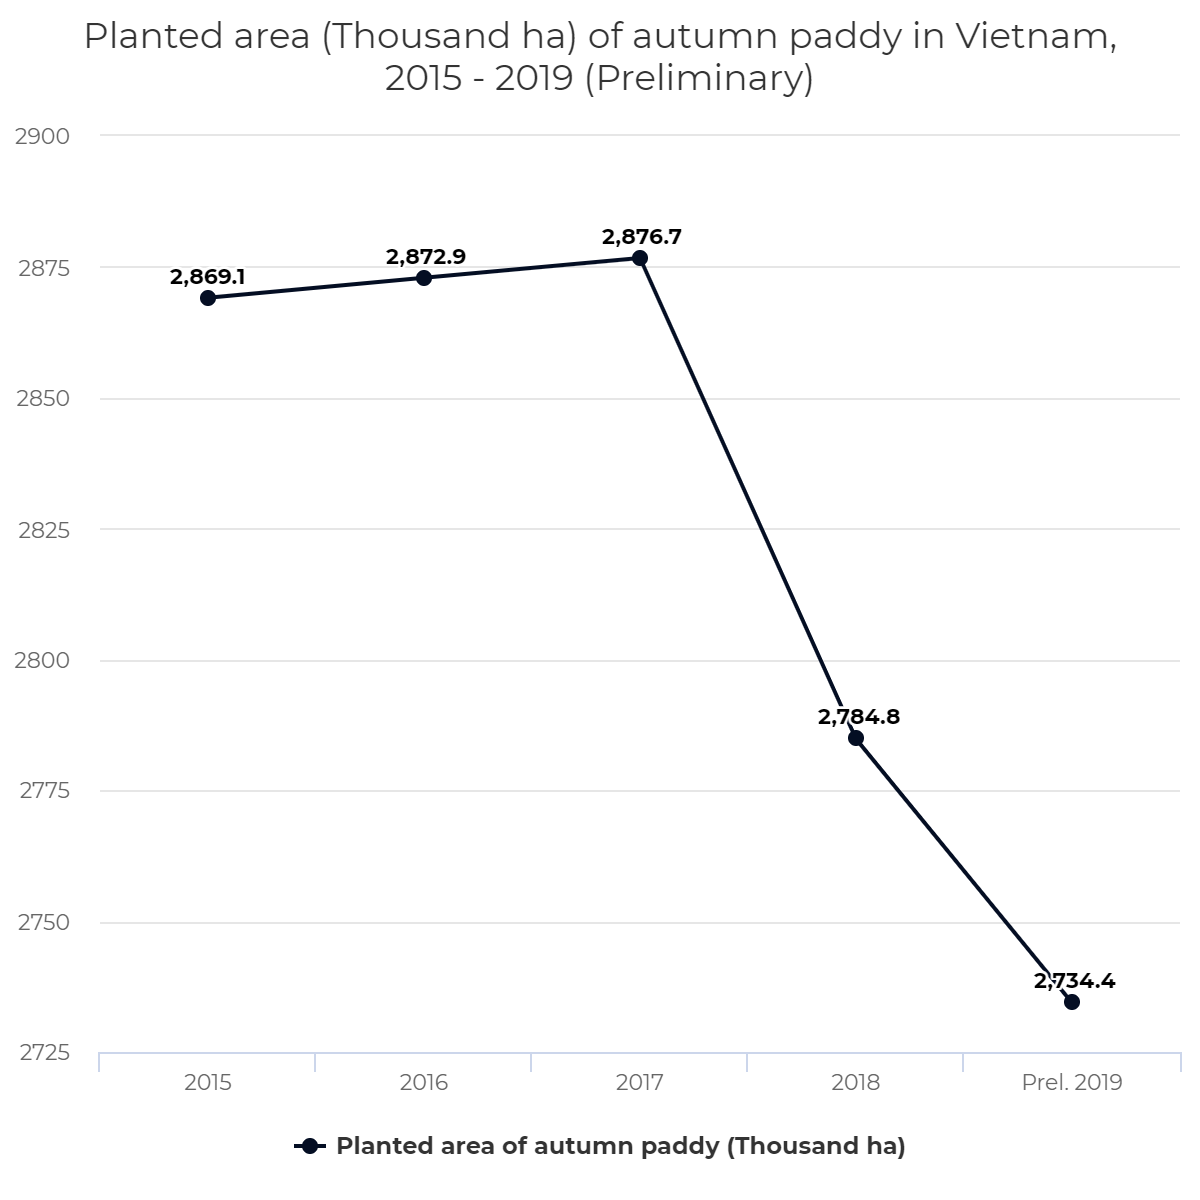 Planted area (Thousand ha) of autumn paddy in Vietnam, 2015 – 2019 (Preliminary)